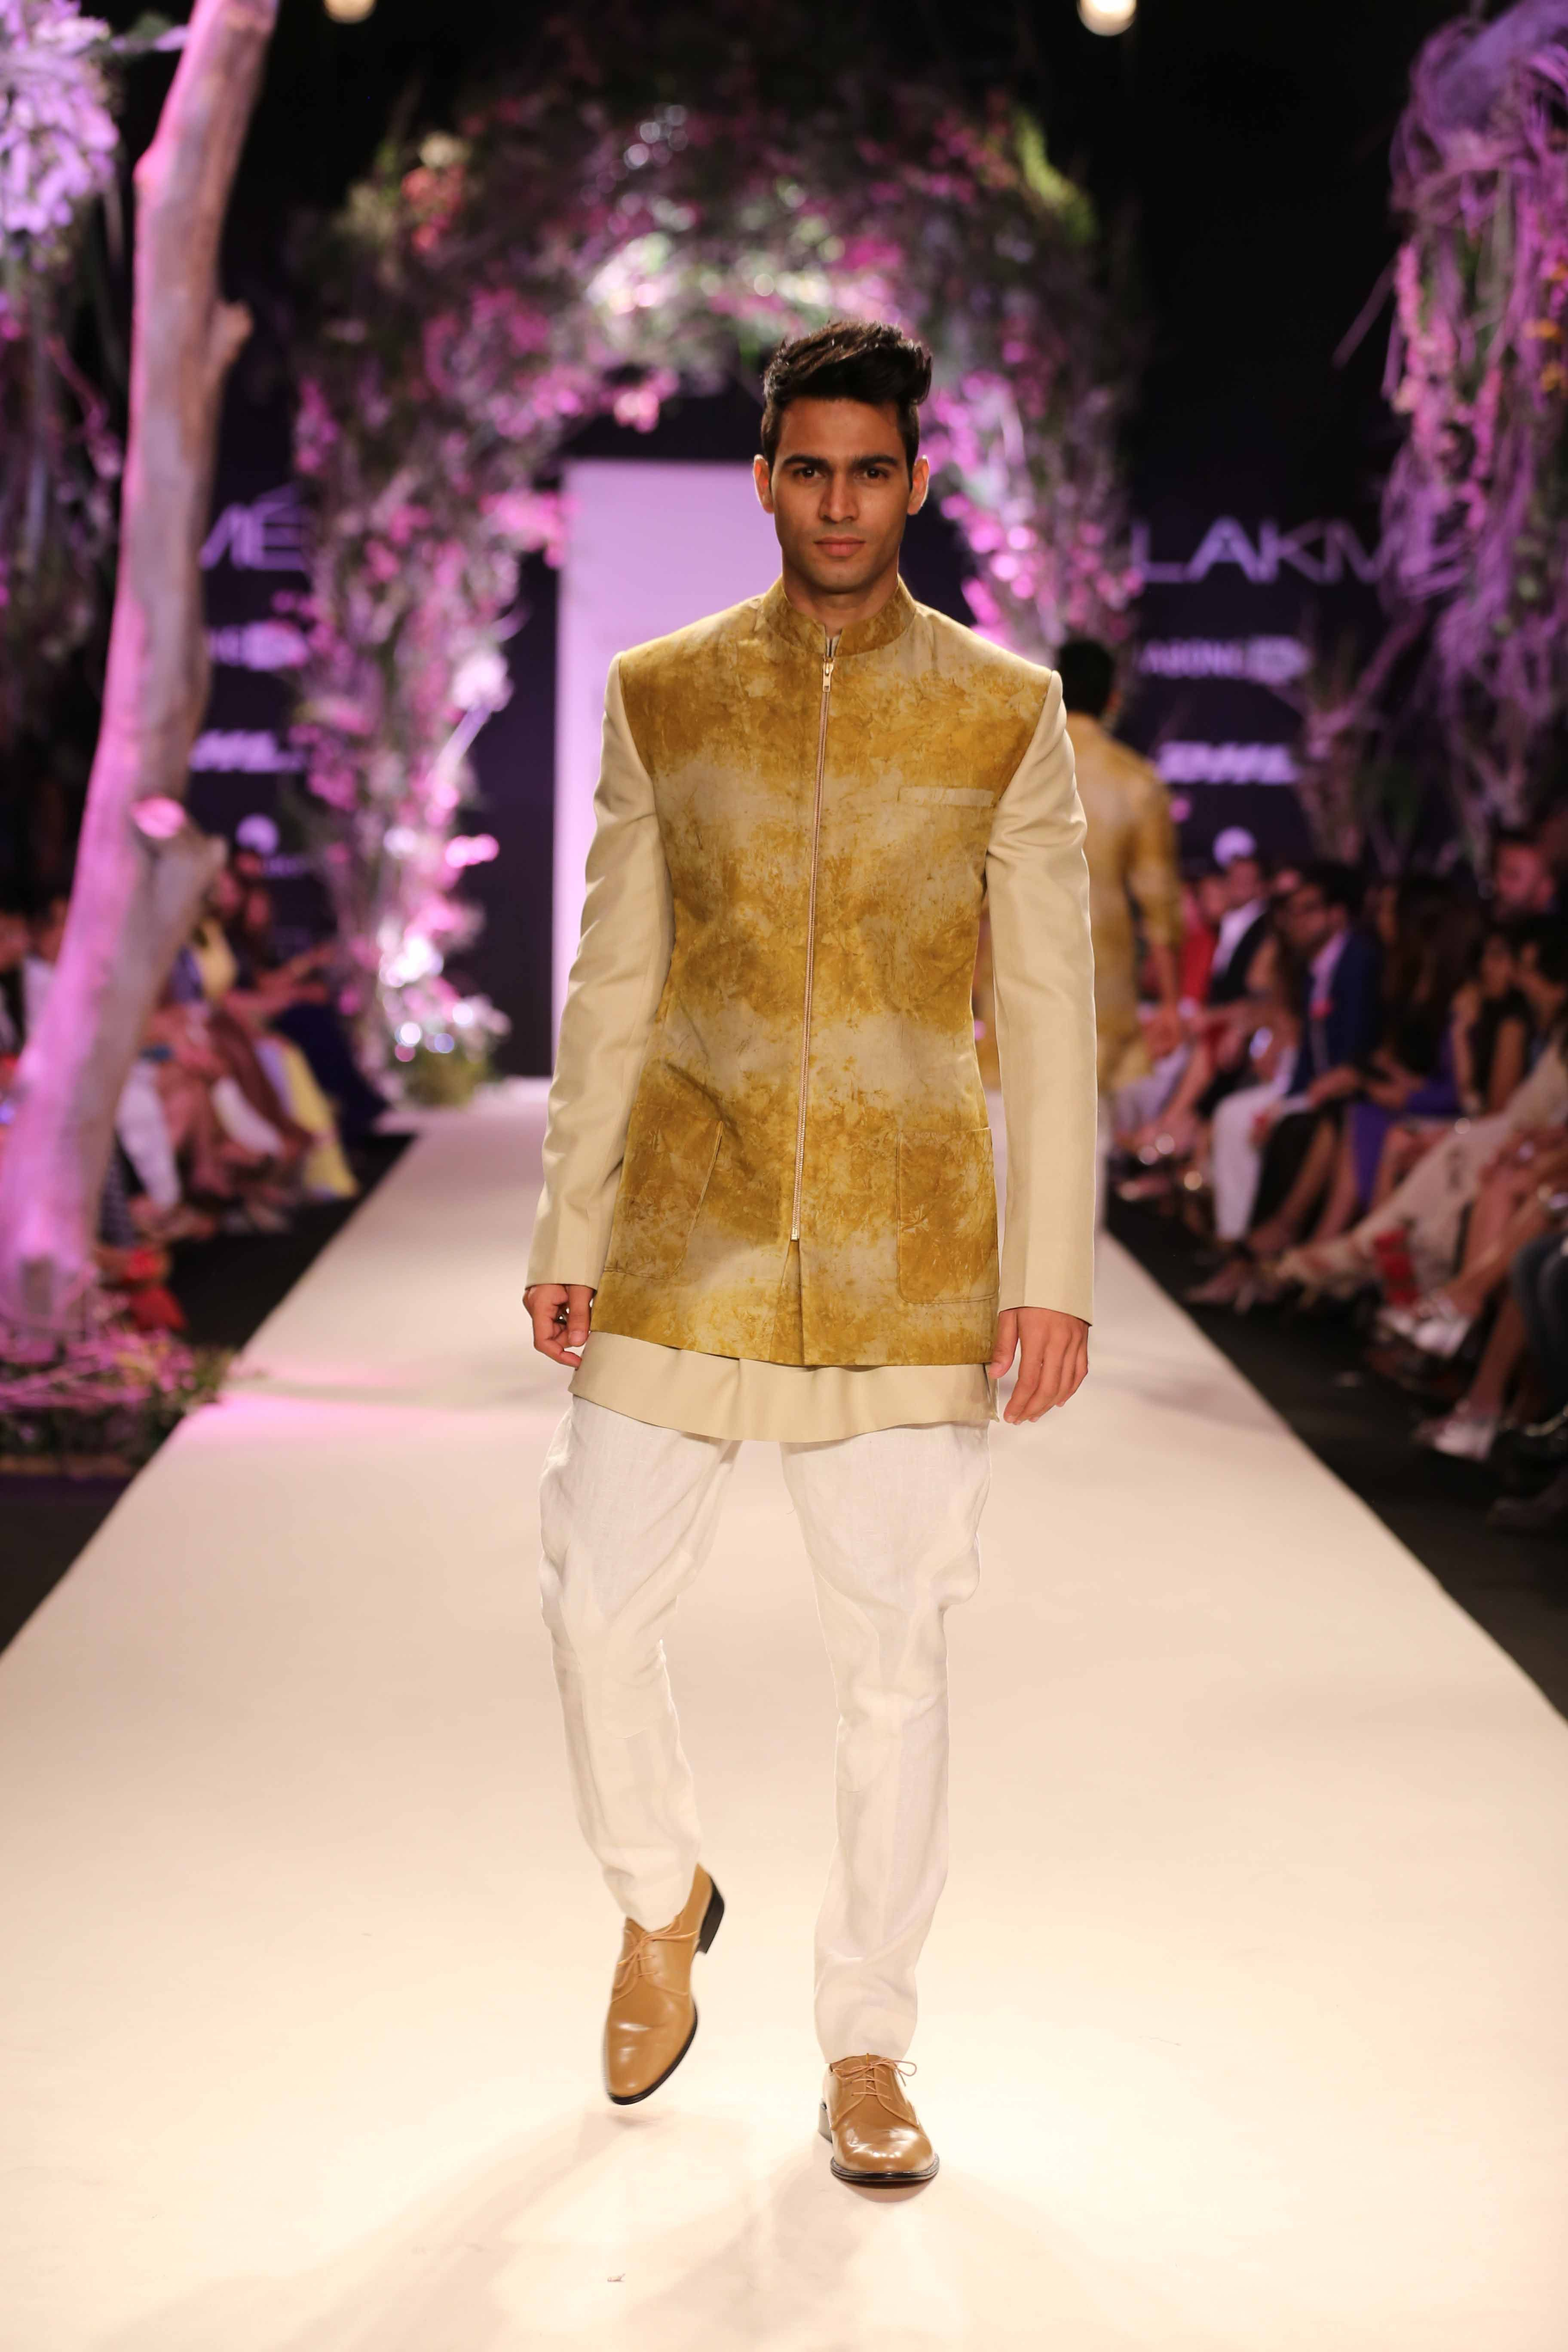 Manish malhotra bridal collection 2014 - Mens Collection Exclusively From Manish Malhotra Lakme Fashion Week 2014